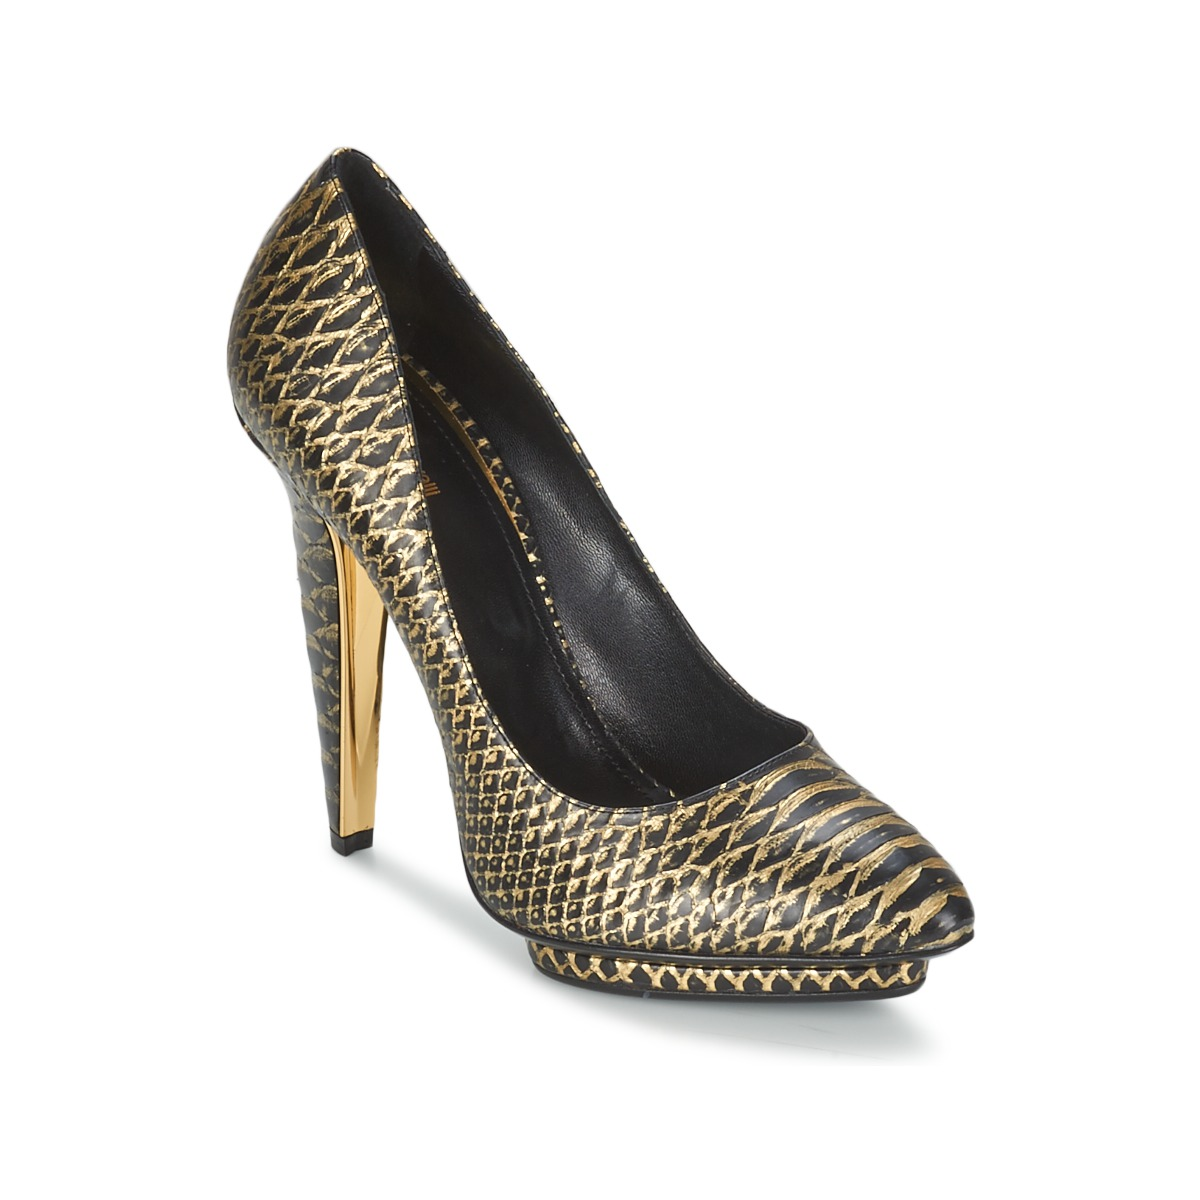 Court-shoes Roberto Cavalli YDS622-UC168-D0007 Black / GOLD